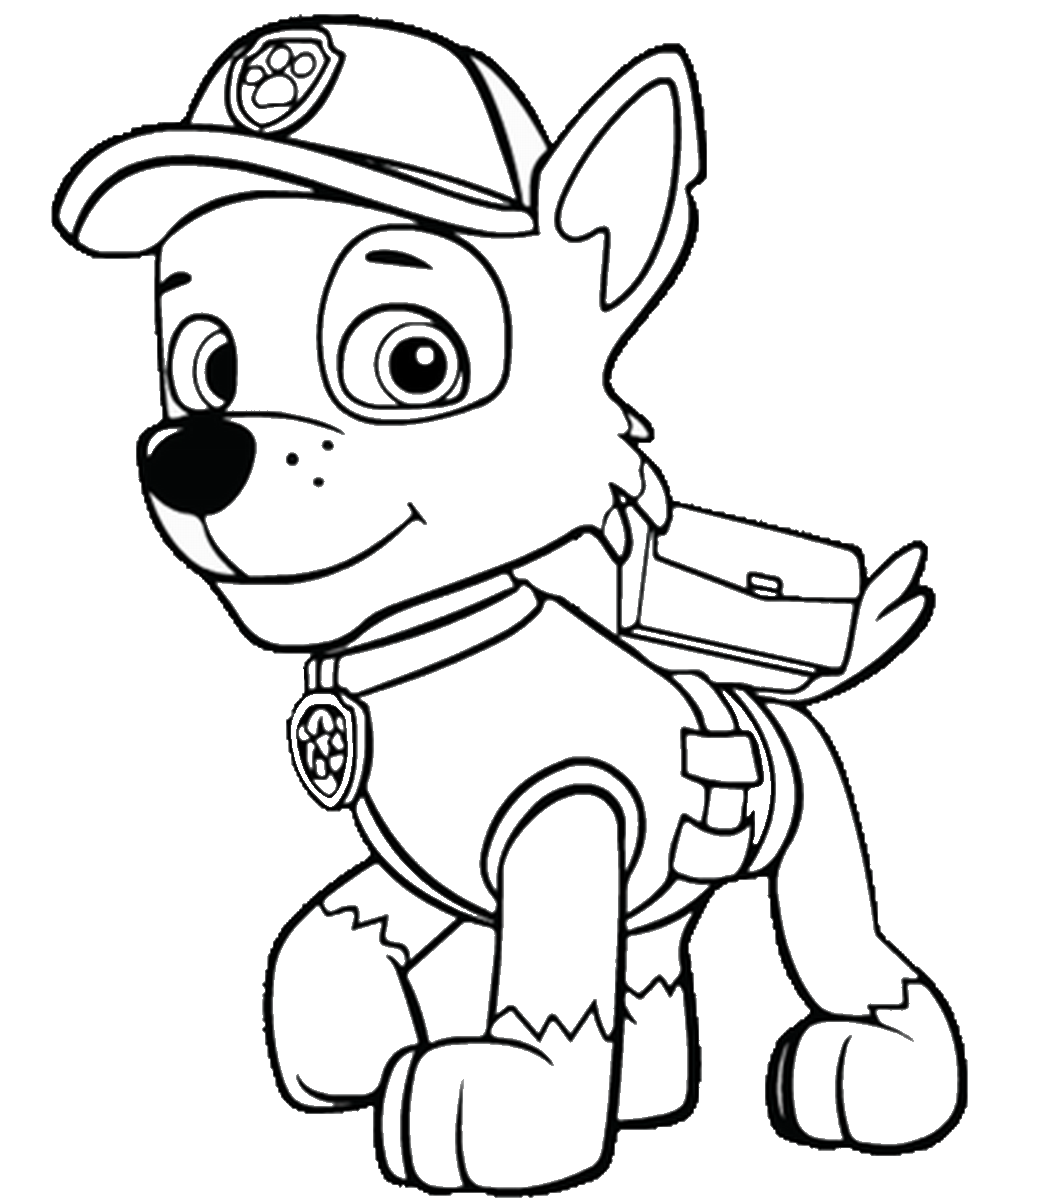 Paw patrol clipart black and white 3 » Clipart Station.